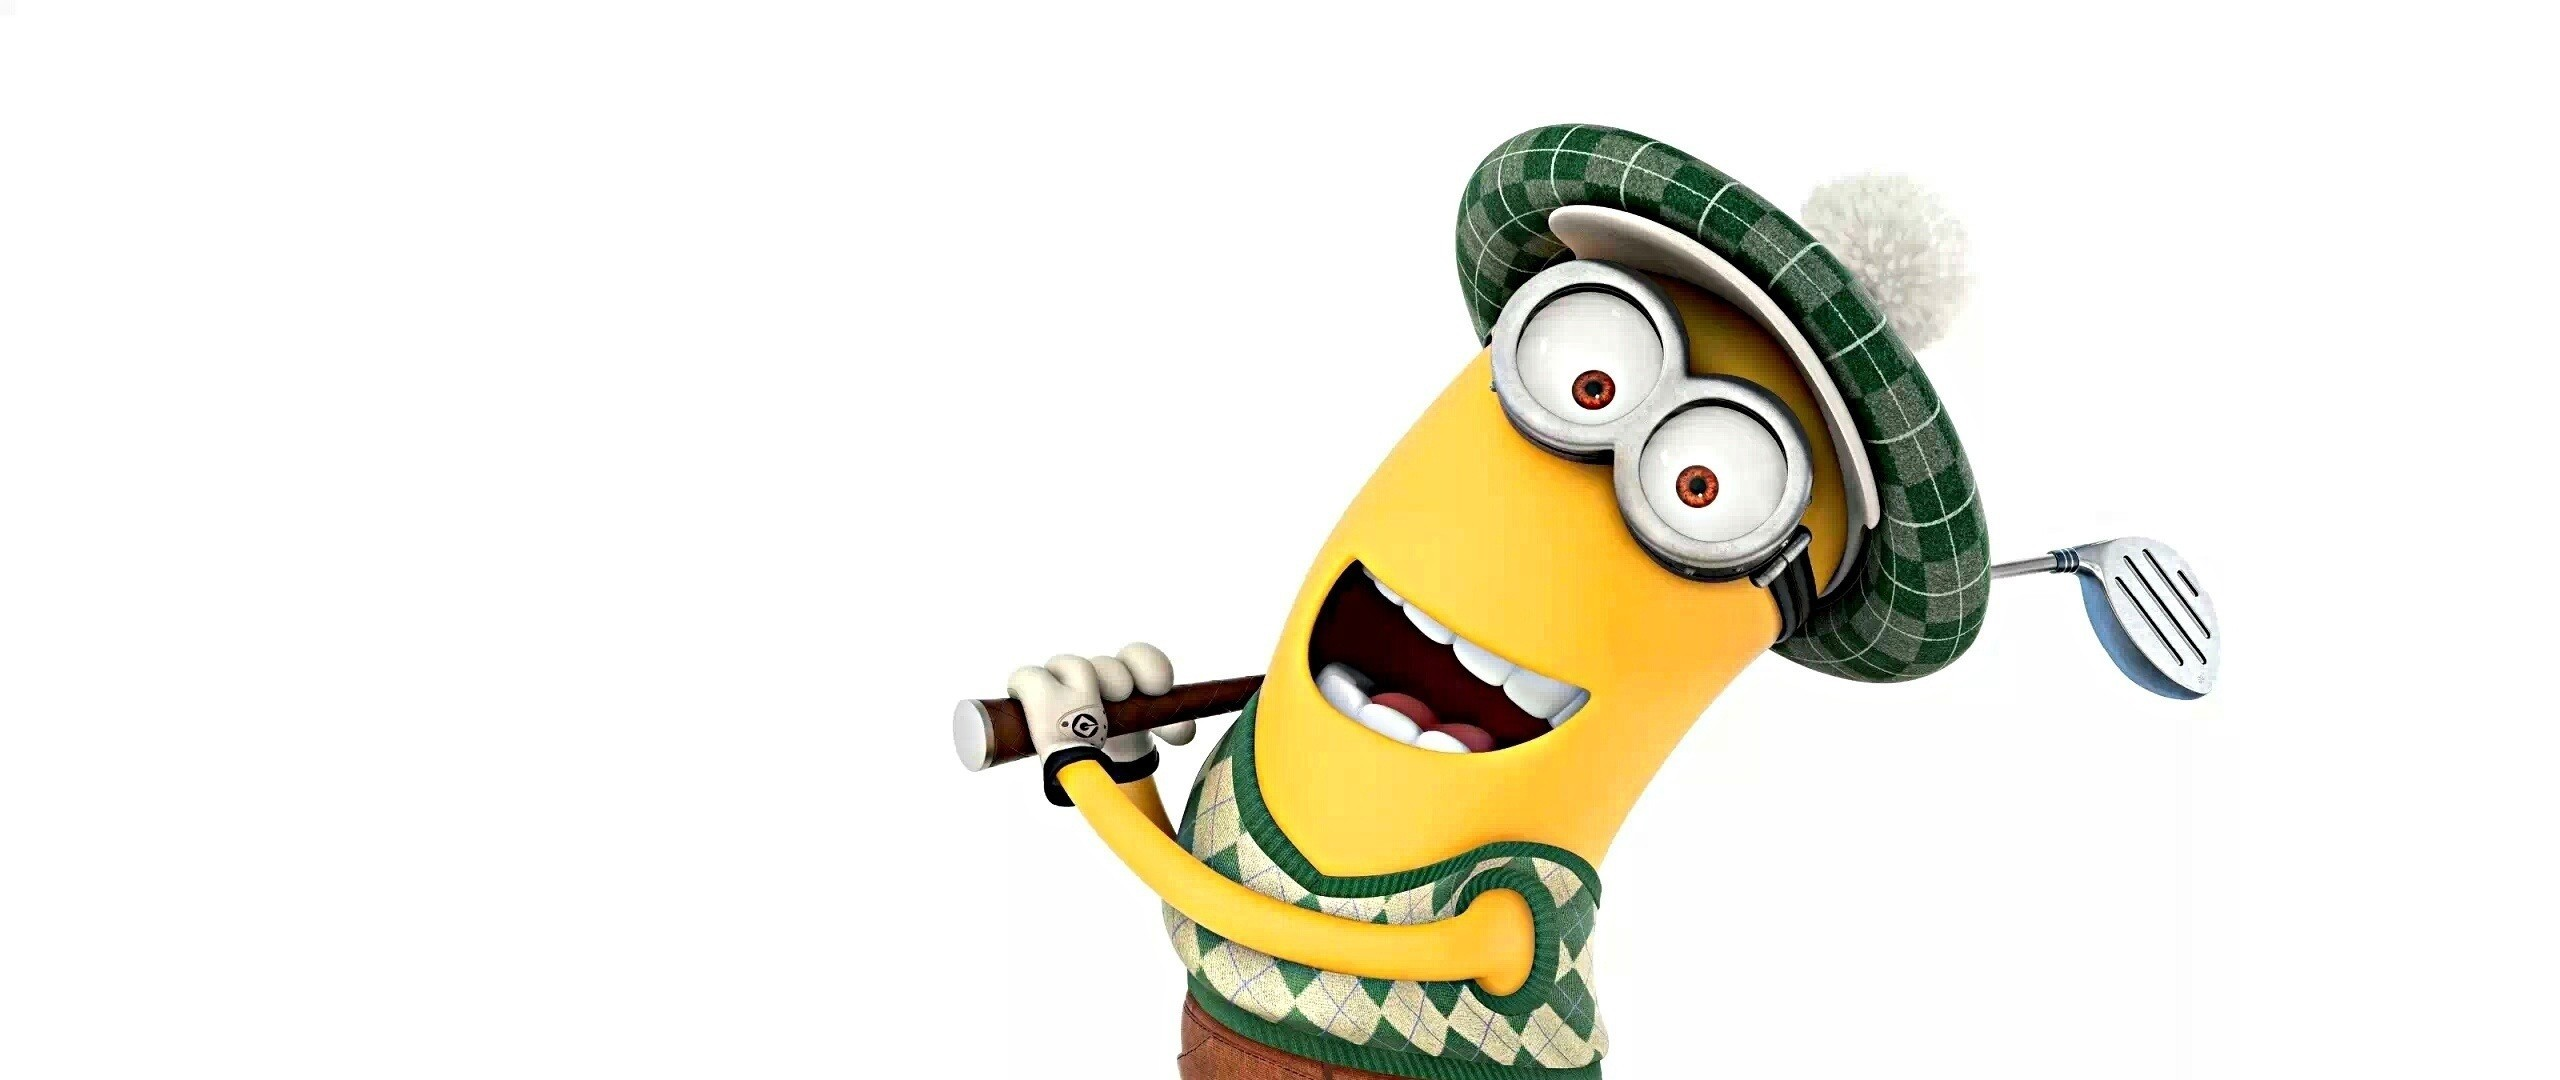 Wallpaper kevin, minion, despicable me 2, cartoon, movies,